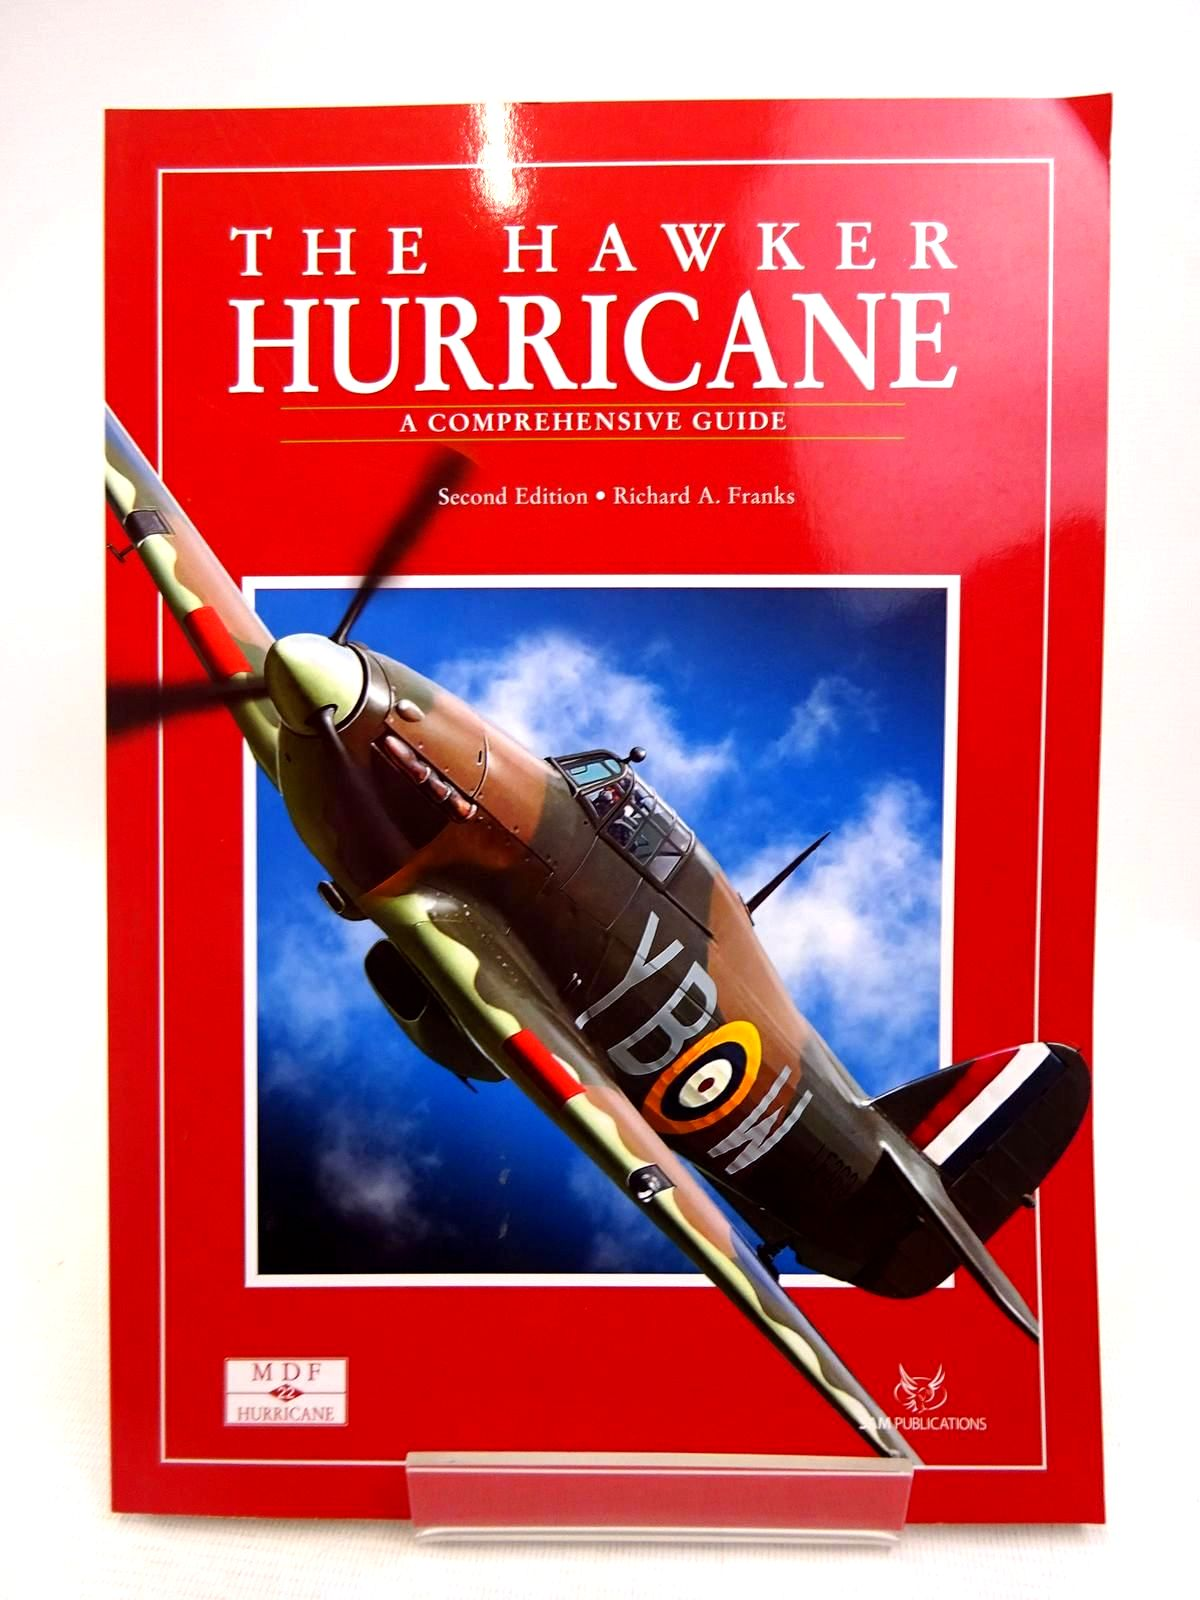 Photo of THE HAWKER HURRICANE A COMPREHENSIVE GUIDE written by Franks, Richard A. published by Sam Publications (STOCK CODE: 1816809)  for sale by Stella & Rose's Books